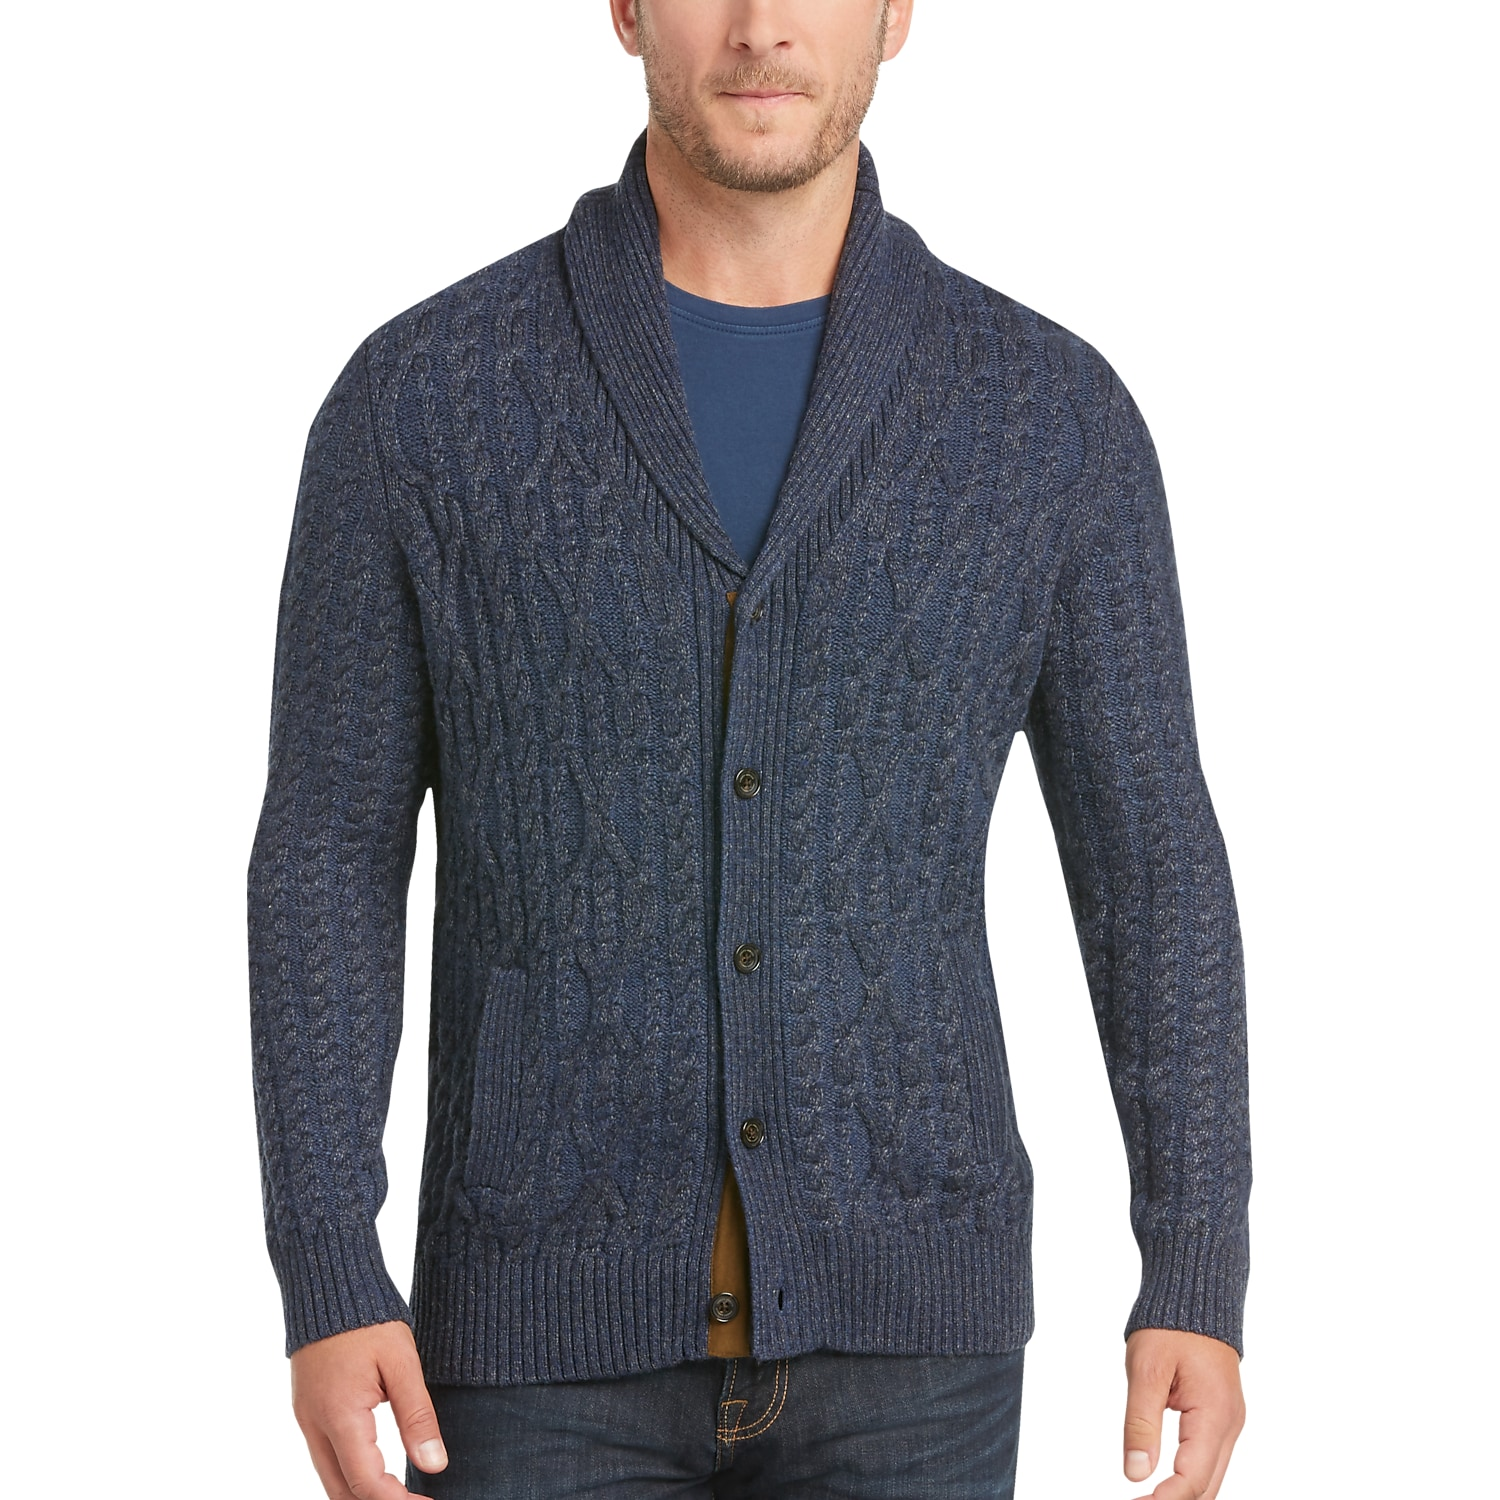 Men's Sweaters - Polo, Button up, Turtlenecks | Men's Wearhouse